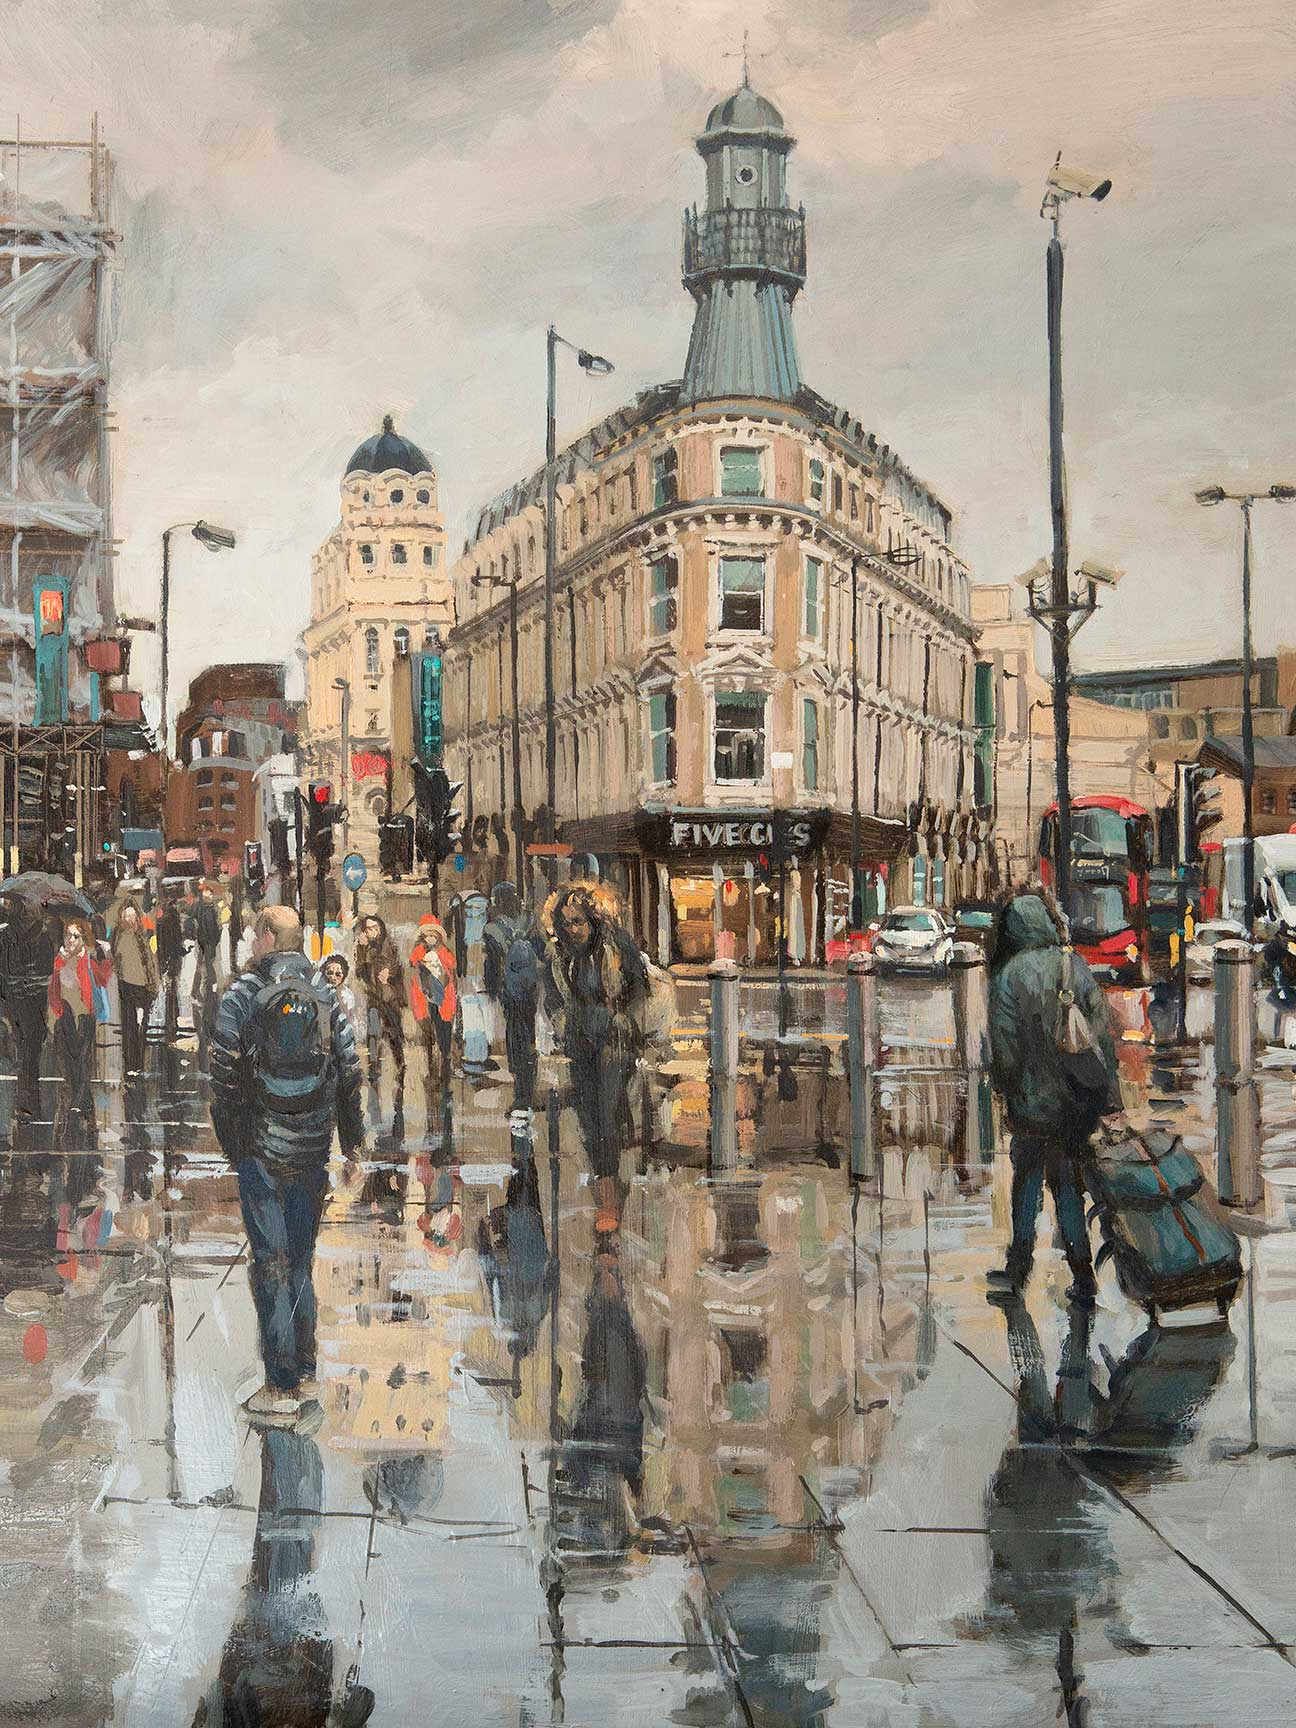 The Lighthouse Kings Cross Painting by British Artist Nick Grove